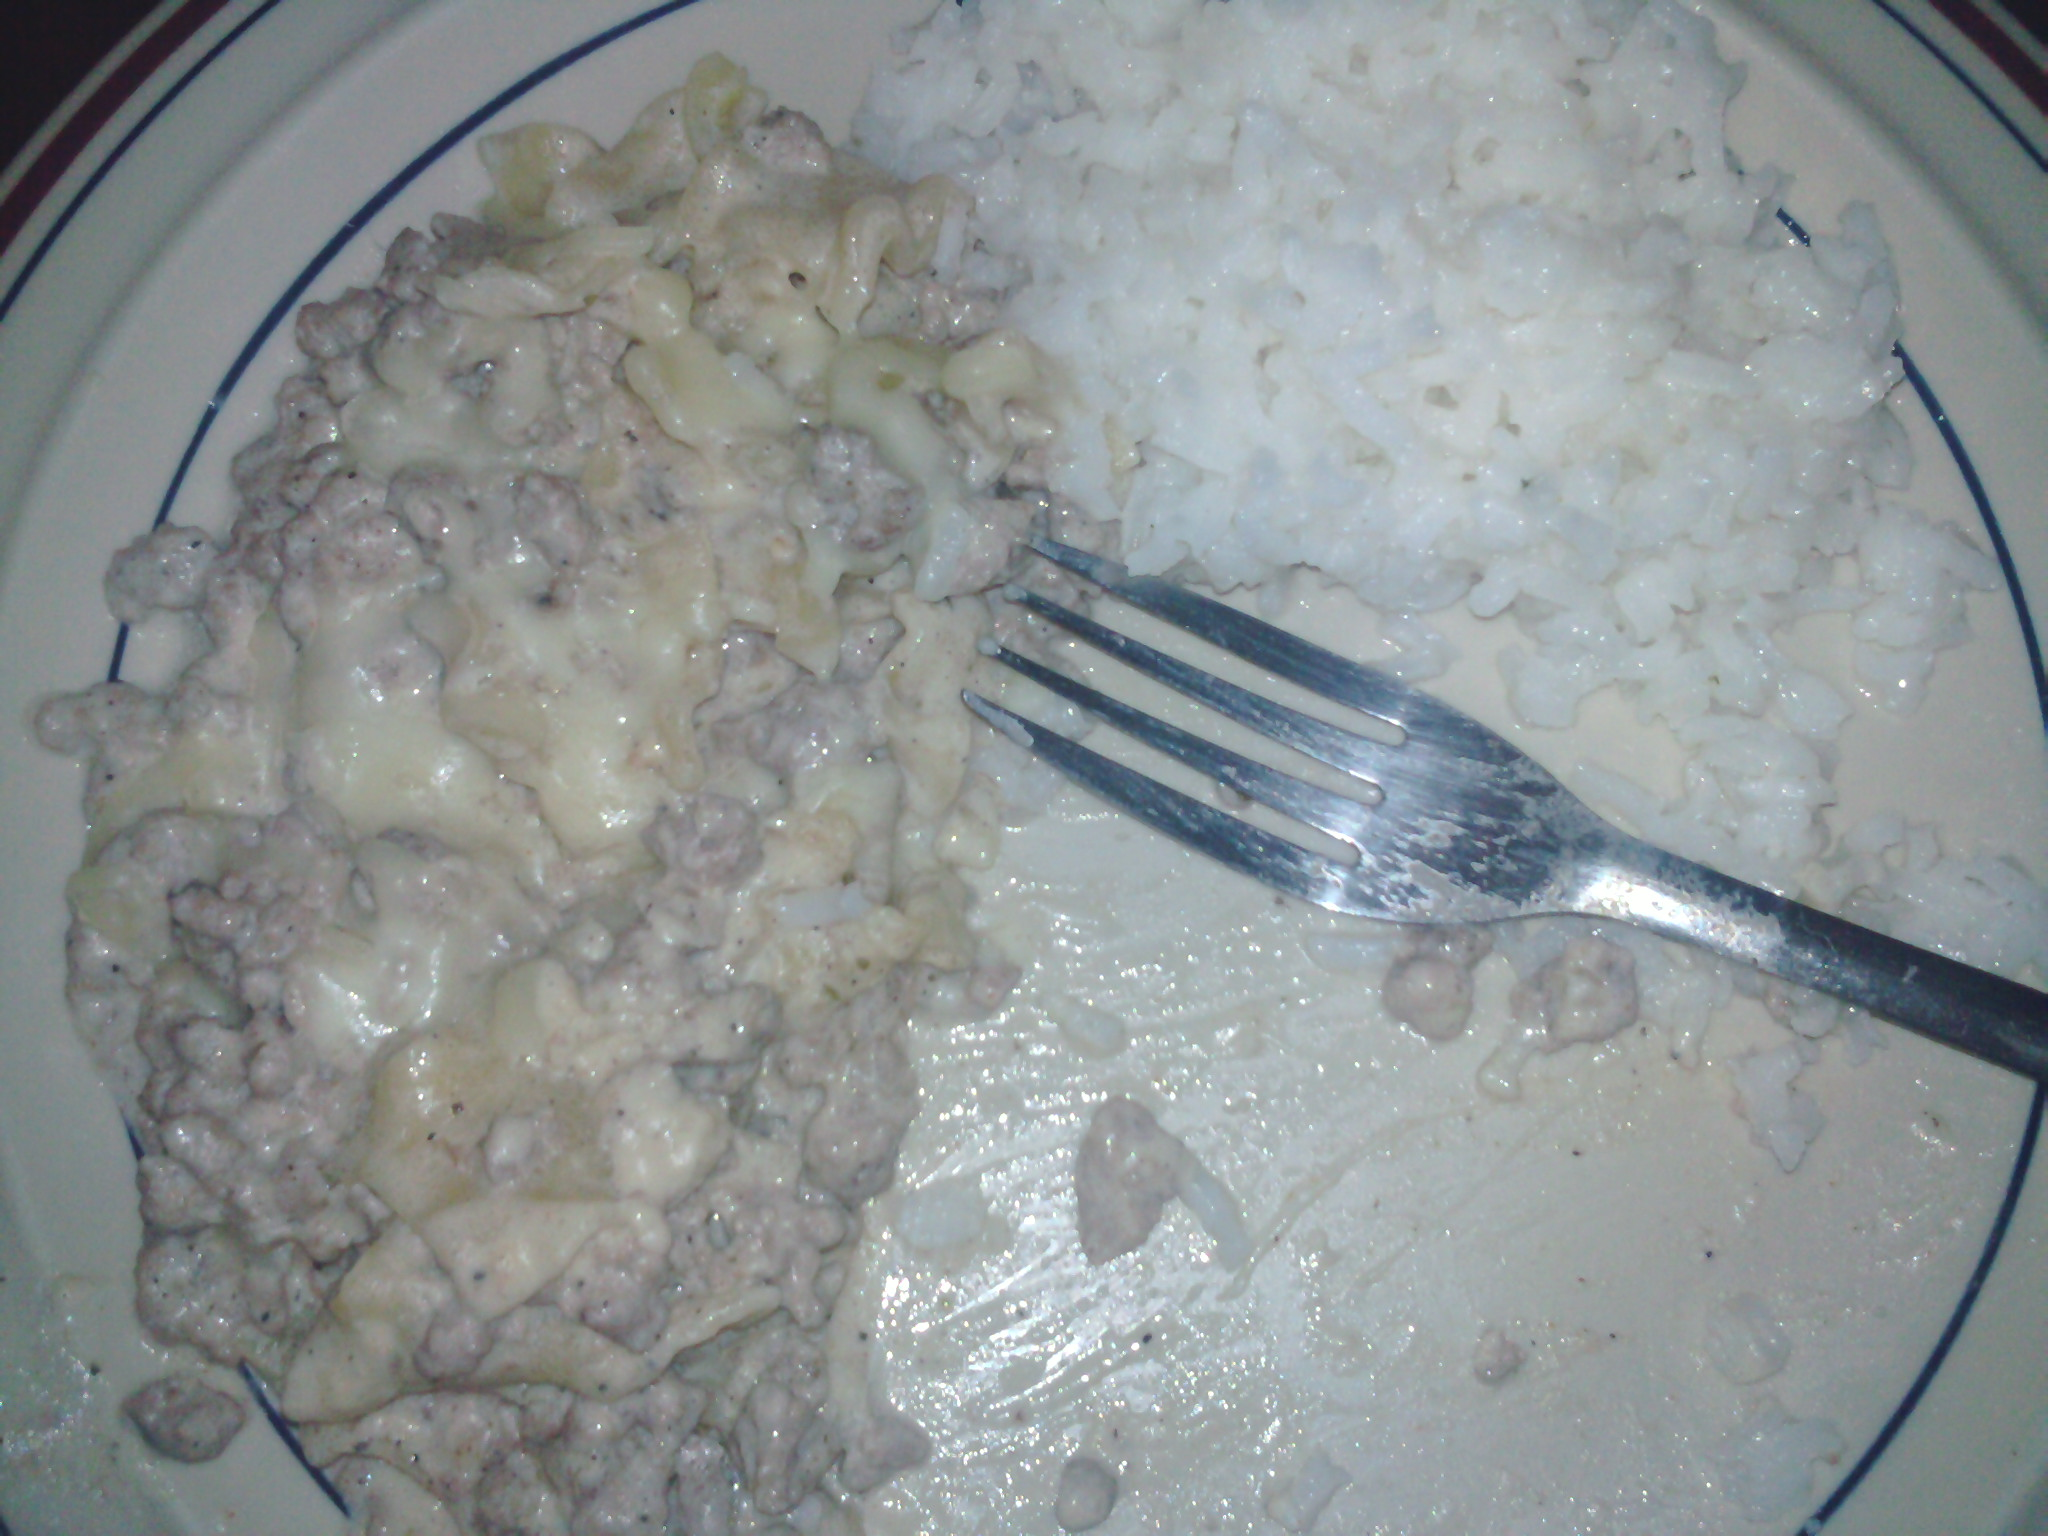 sunny san diego :: homemade turkey stroganoff with a side of garlic and parsley white rice, looks gross but it was damn good